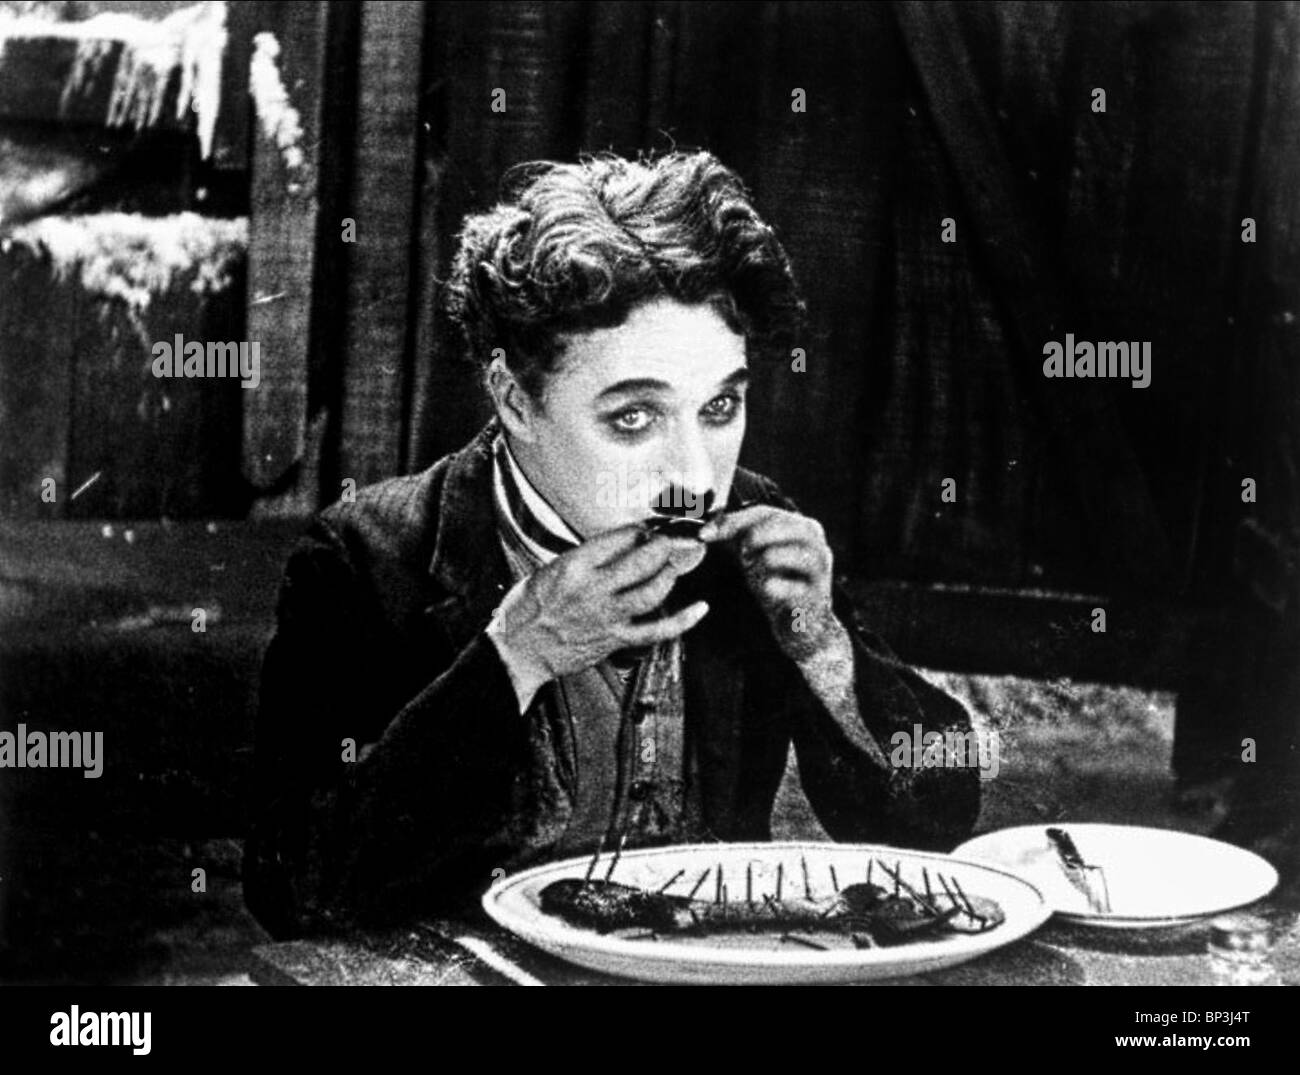 CHARLIE CHAPLIN THE GOLD RUSH (1925) - Stock Image